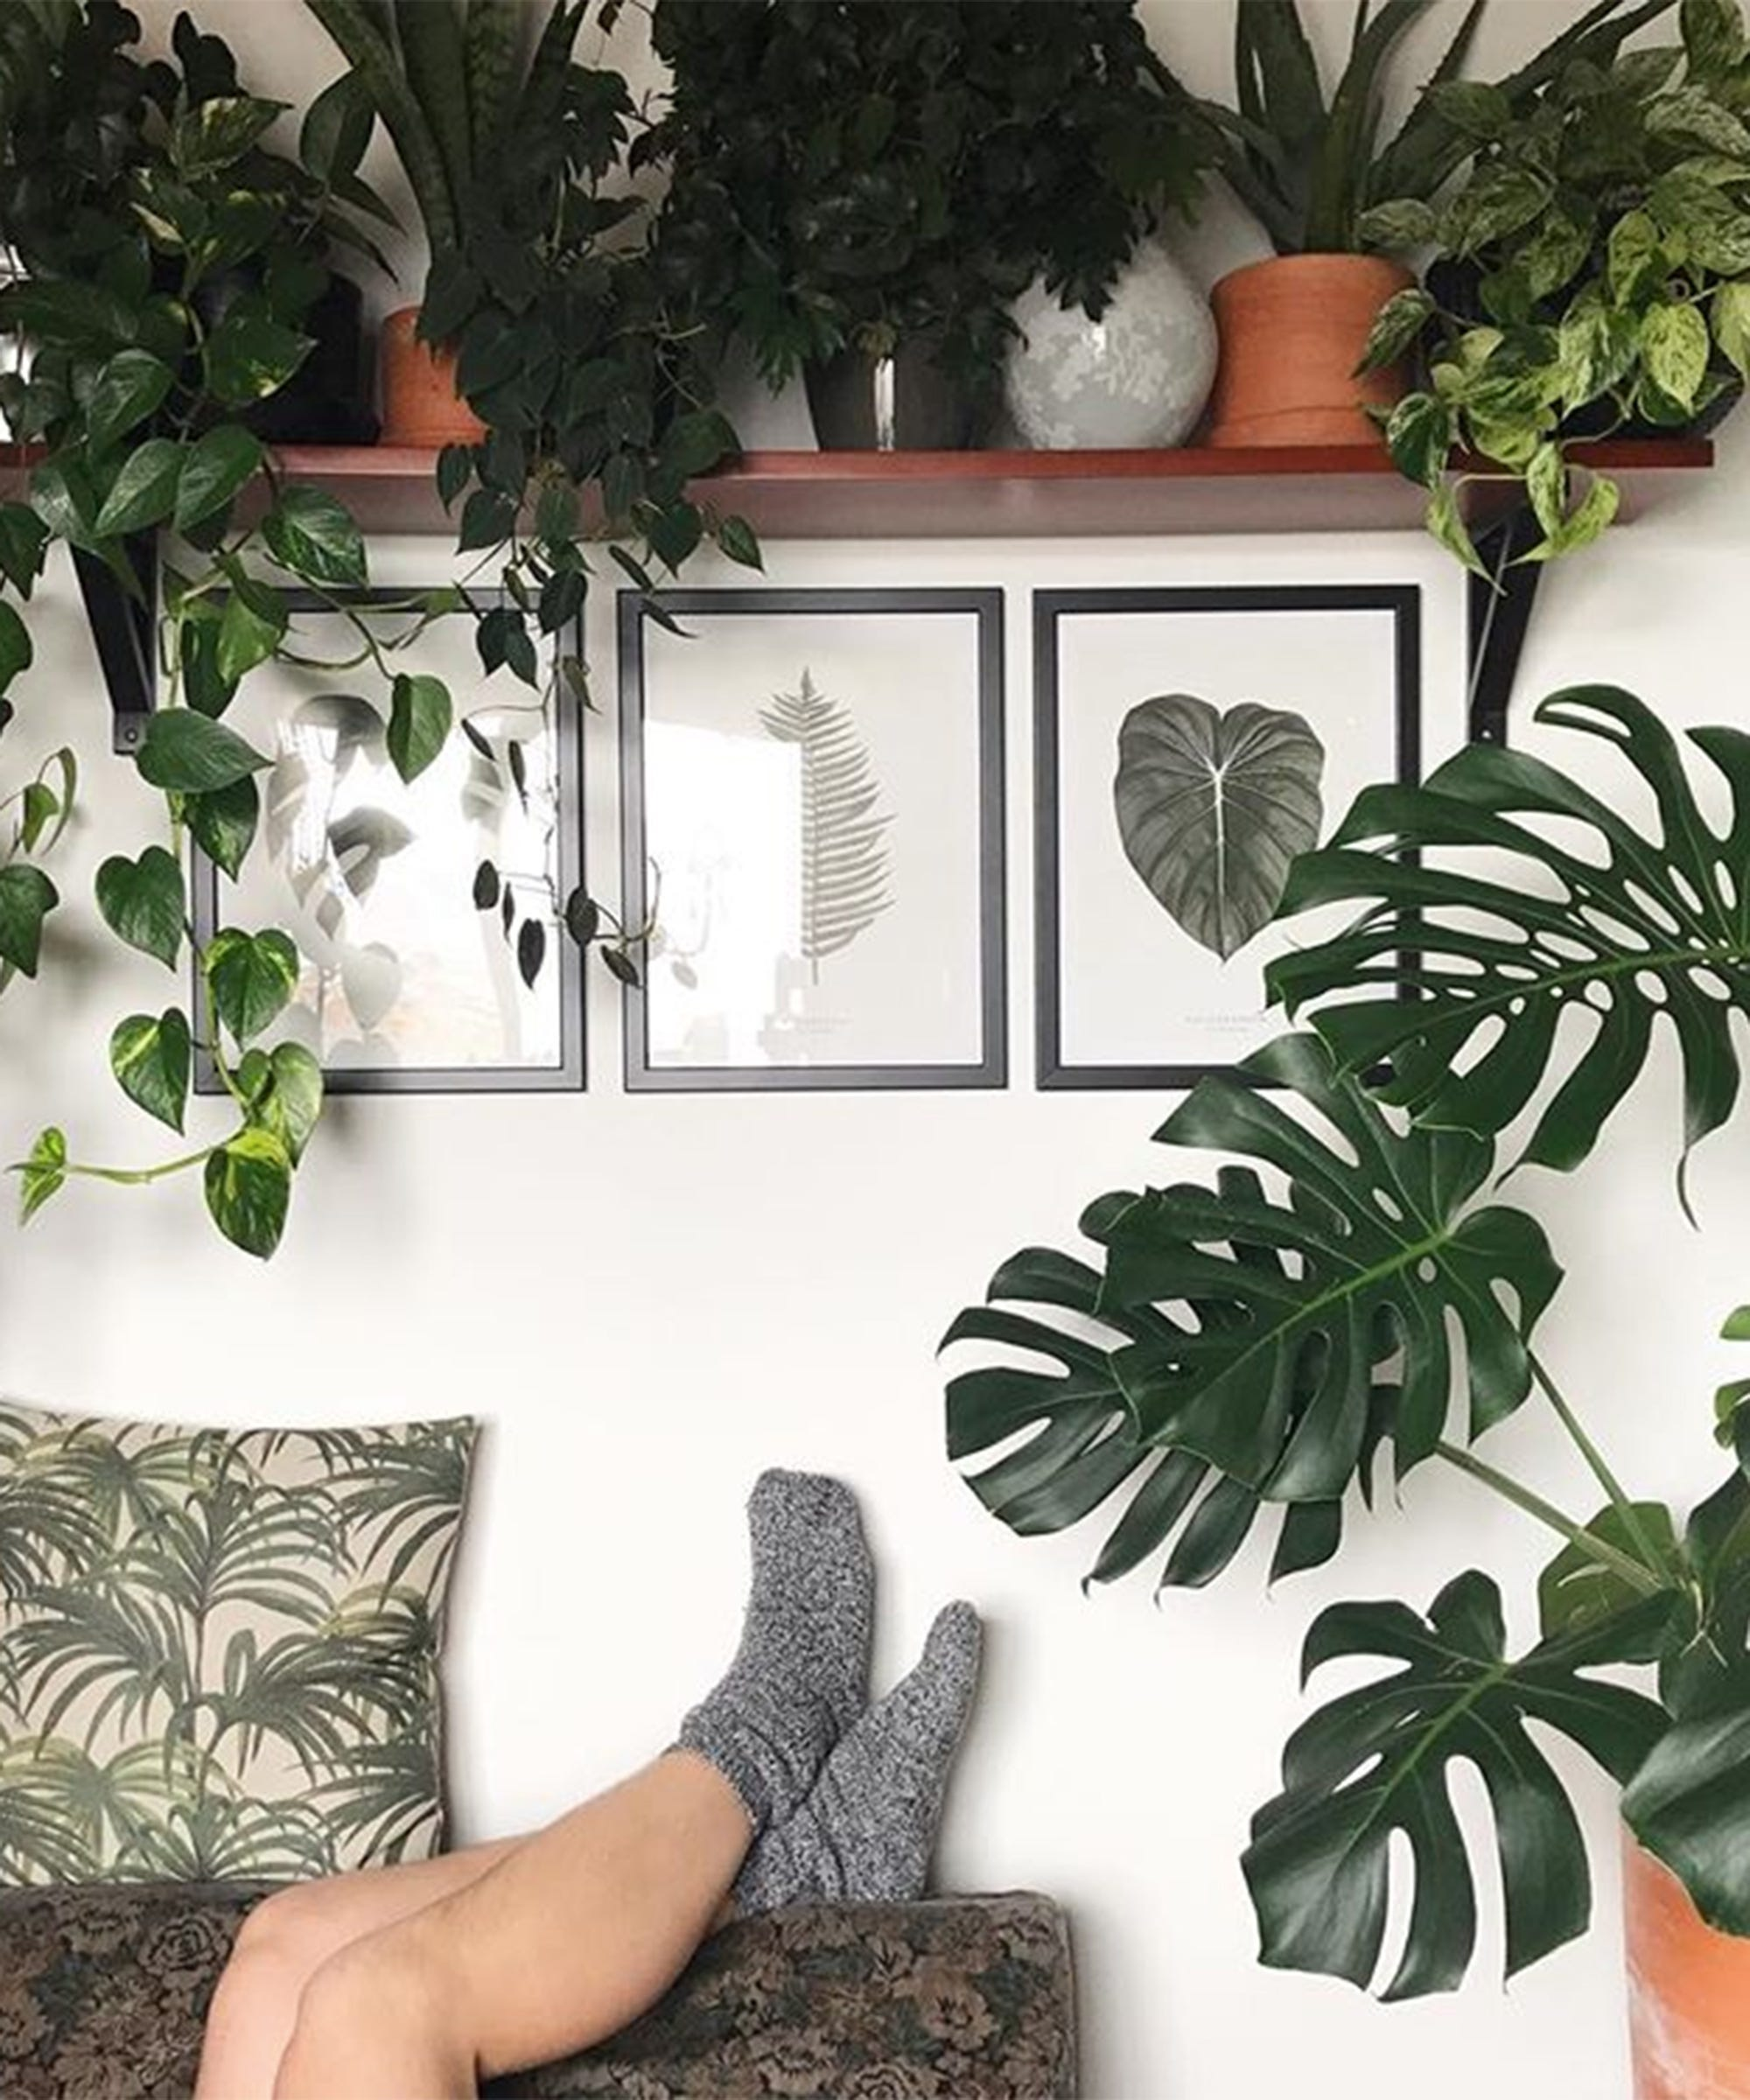 Plant Photography Tips Instagram Urban Jungle Bloggers